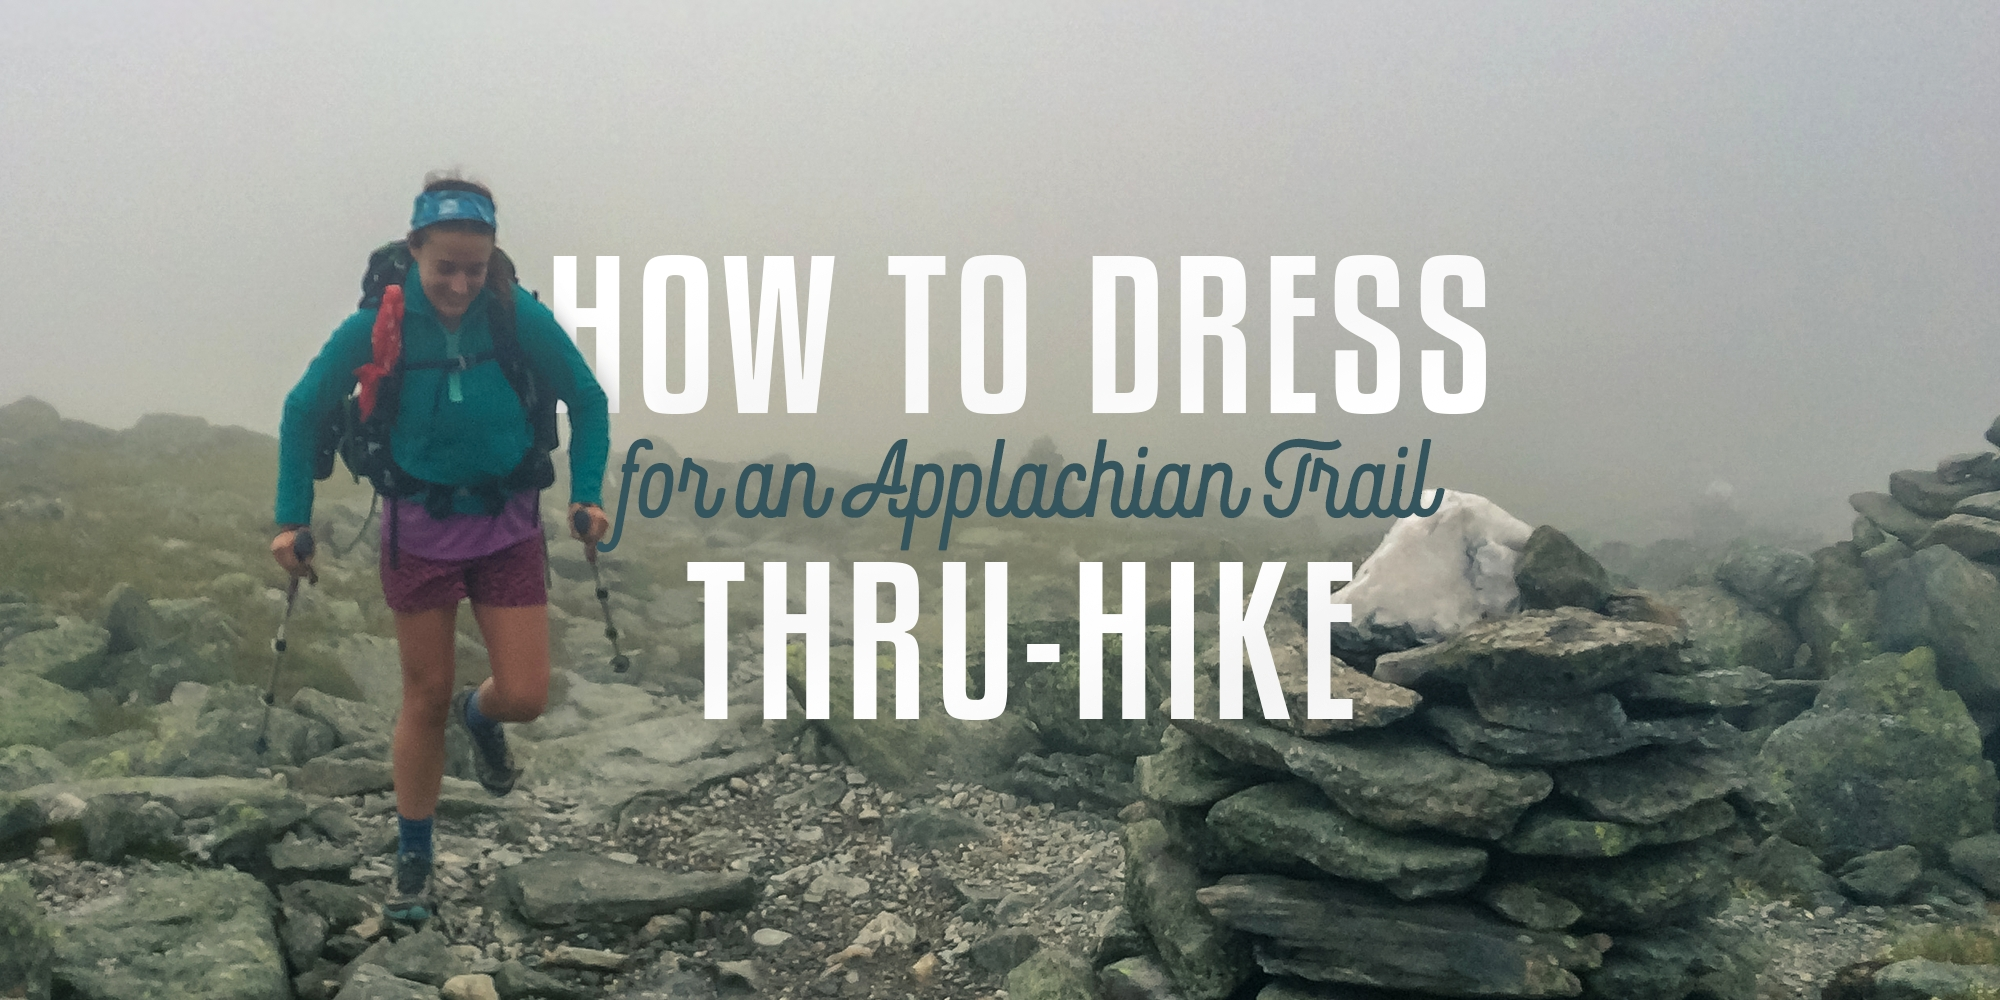 Clothing for an Appalachian Trail Thru-Hike: Our Recommended System, Fabrics, and Products - The Trek